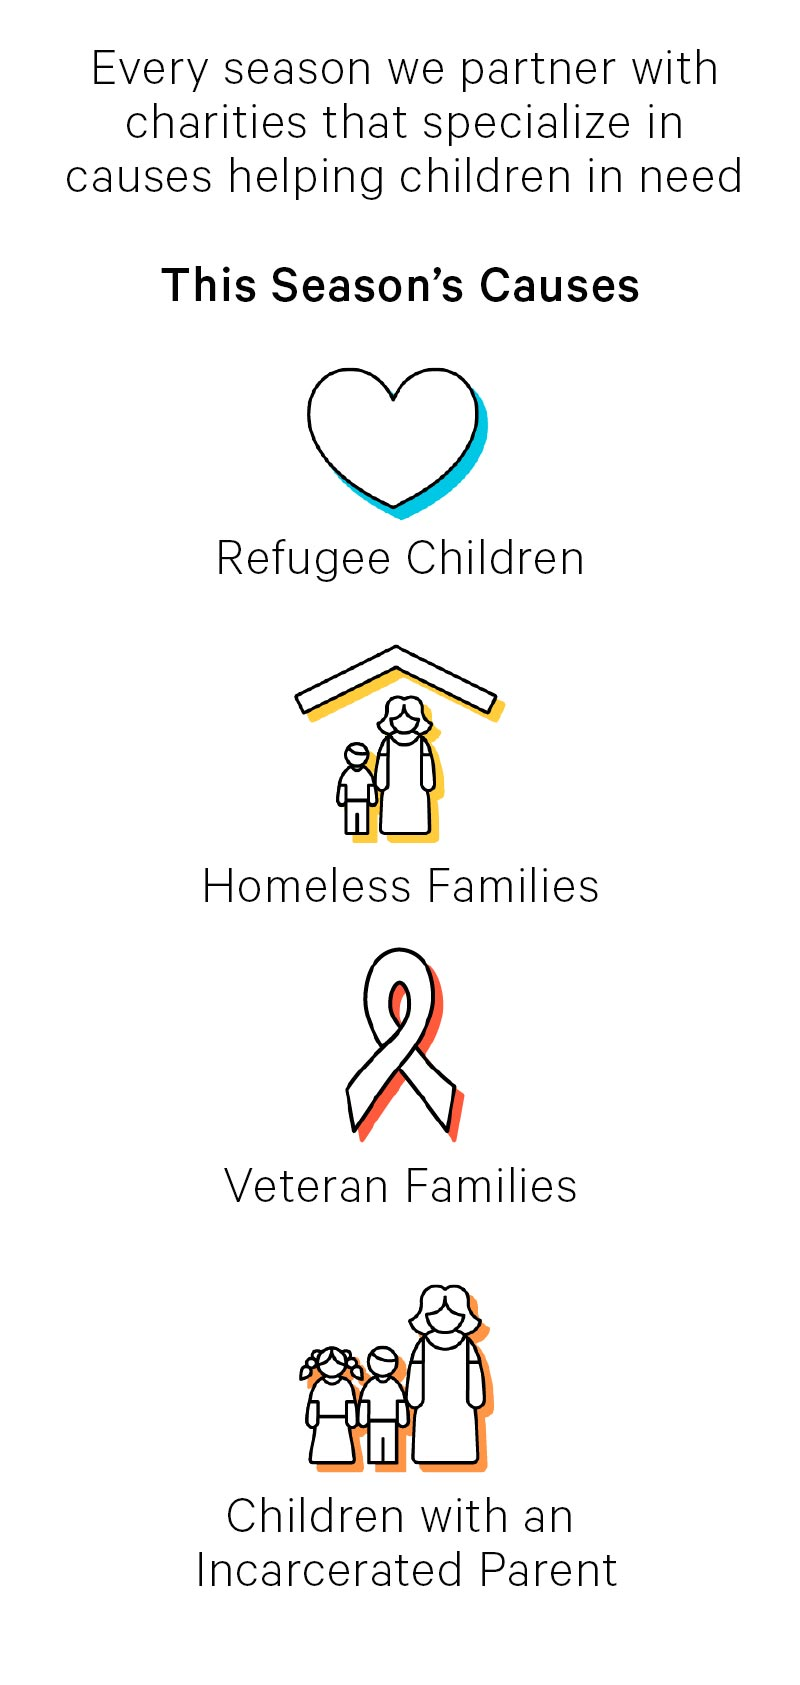 Every season we partner with charities that specialize in causes helping children in need. This season's causes: Refugee Children, Homeless Families, Veteran Families, Children with an incarcerated parent